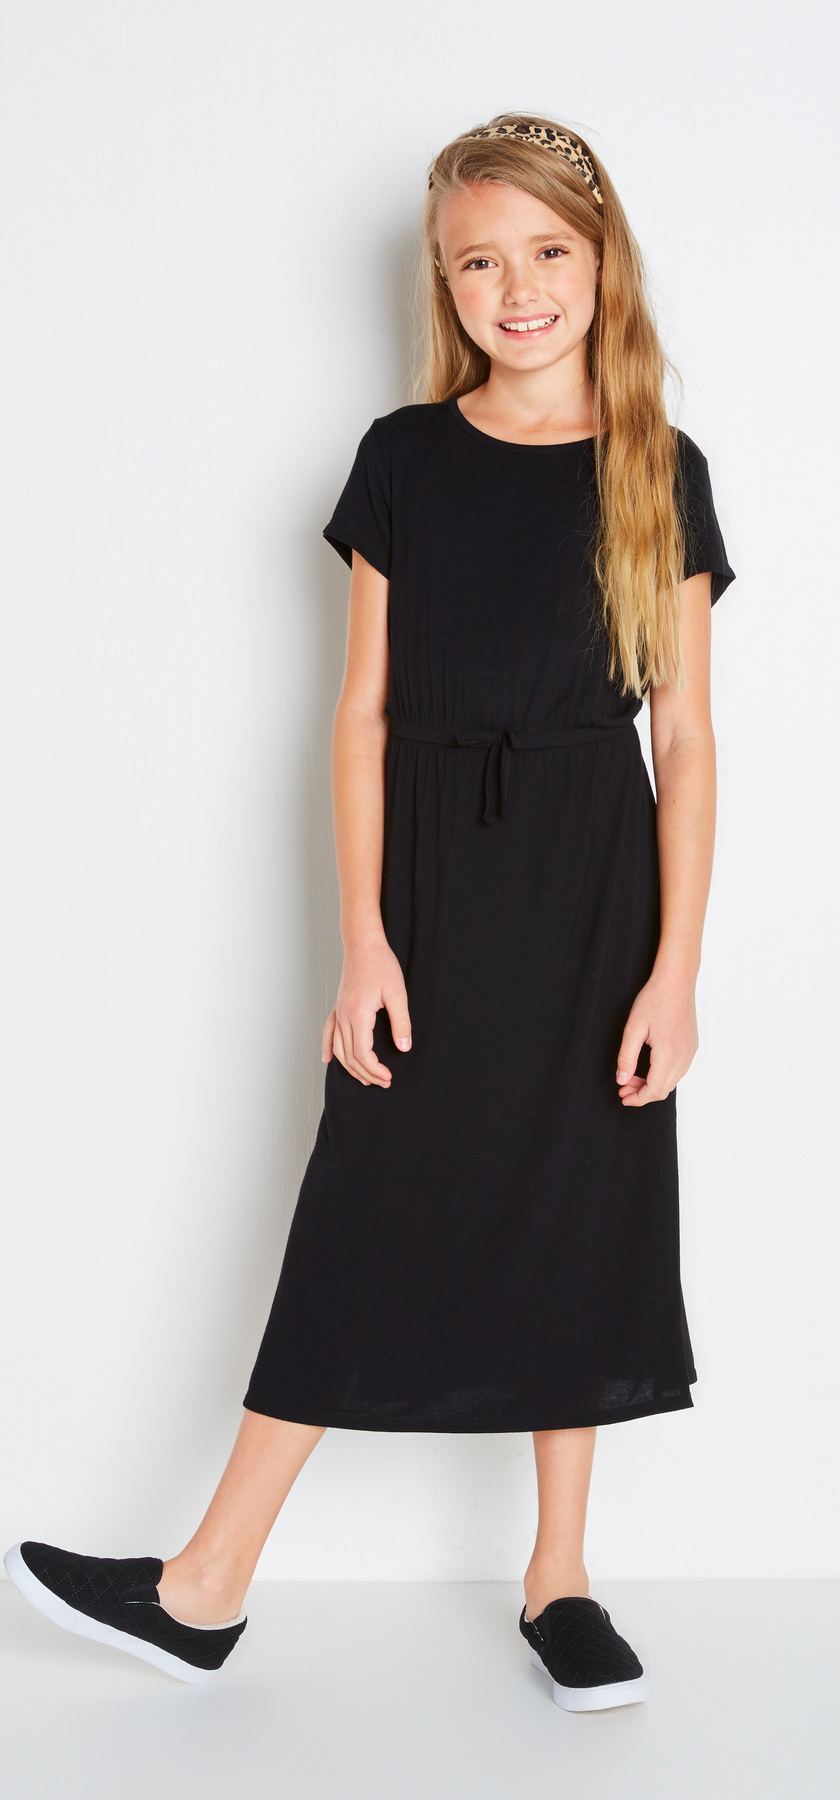 00fe8a10e6e Black Tshirt Dress Outfit - Dress Foto and Picture